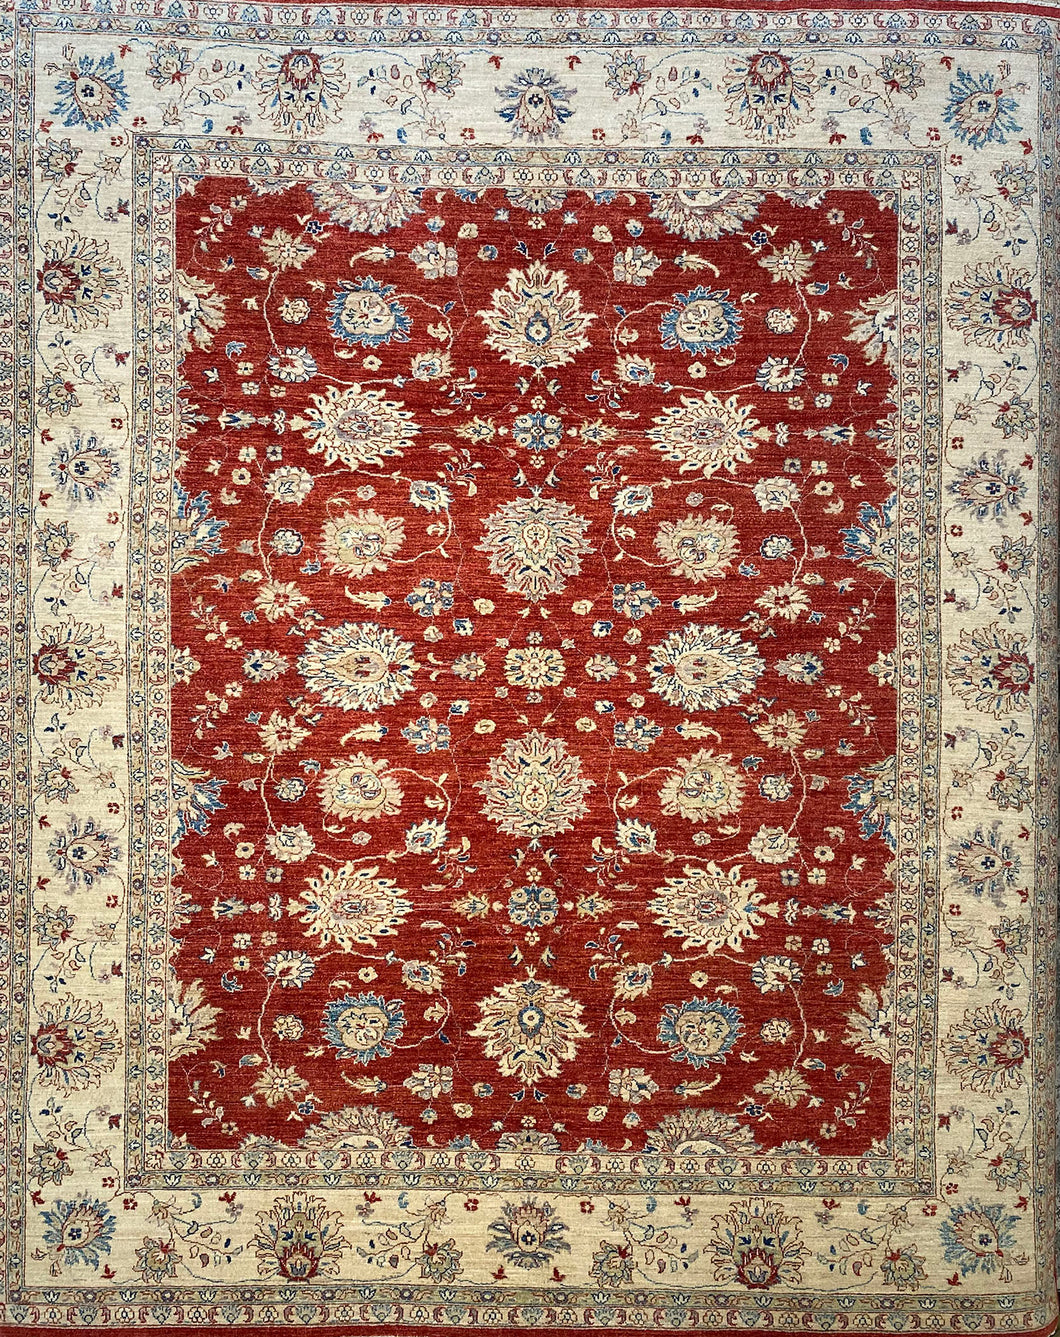 8.1 x 9.1 Ft Handmade Turkısh Wool Vıntage Carpet Turkish Rug